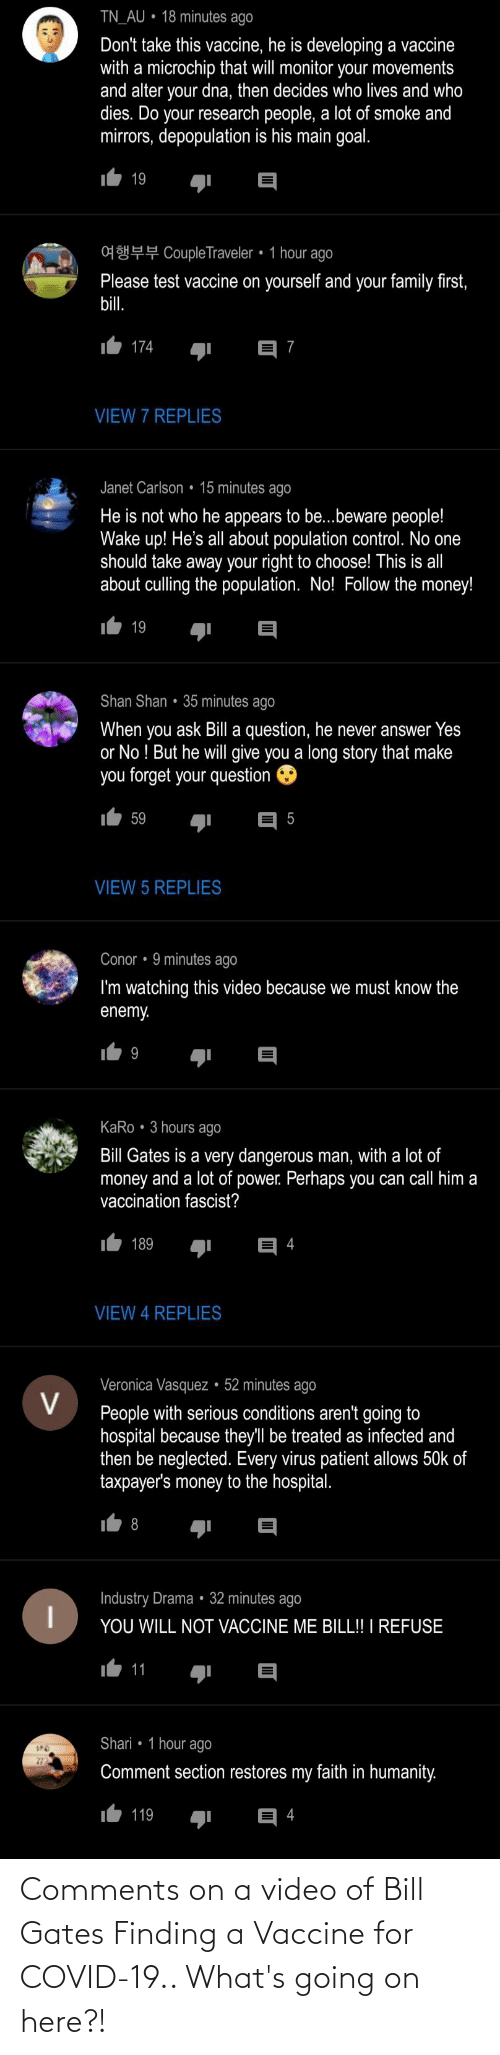 whats going on: Comments on a video of Bill Gates Finding a Vaccine for COVID-19.. What's going on here?!